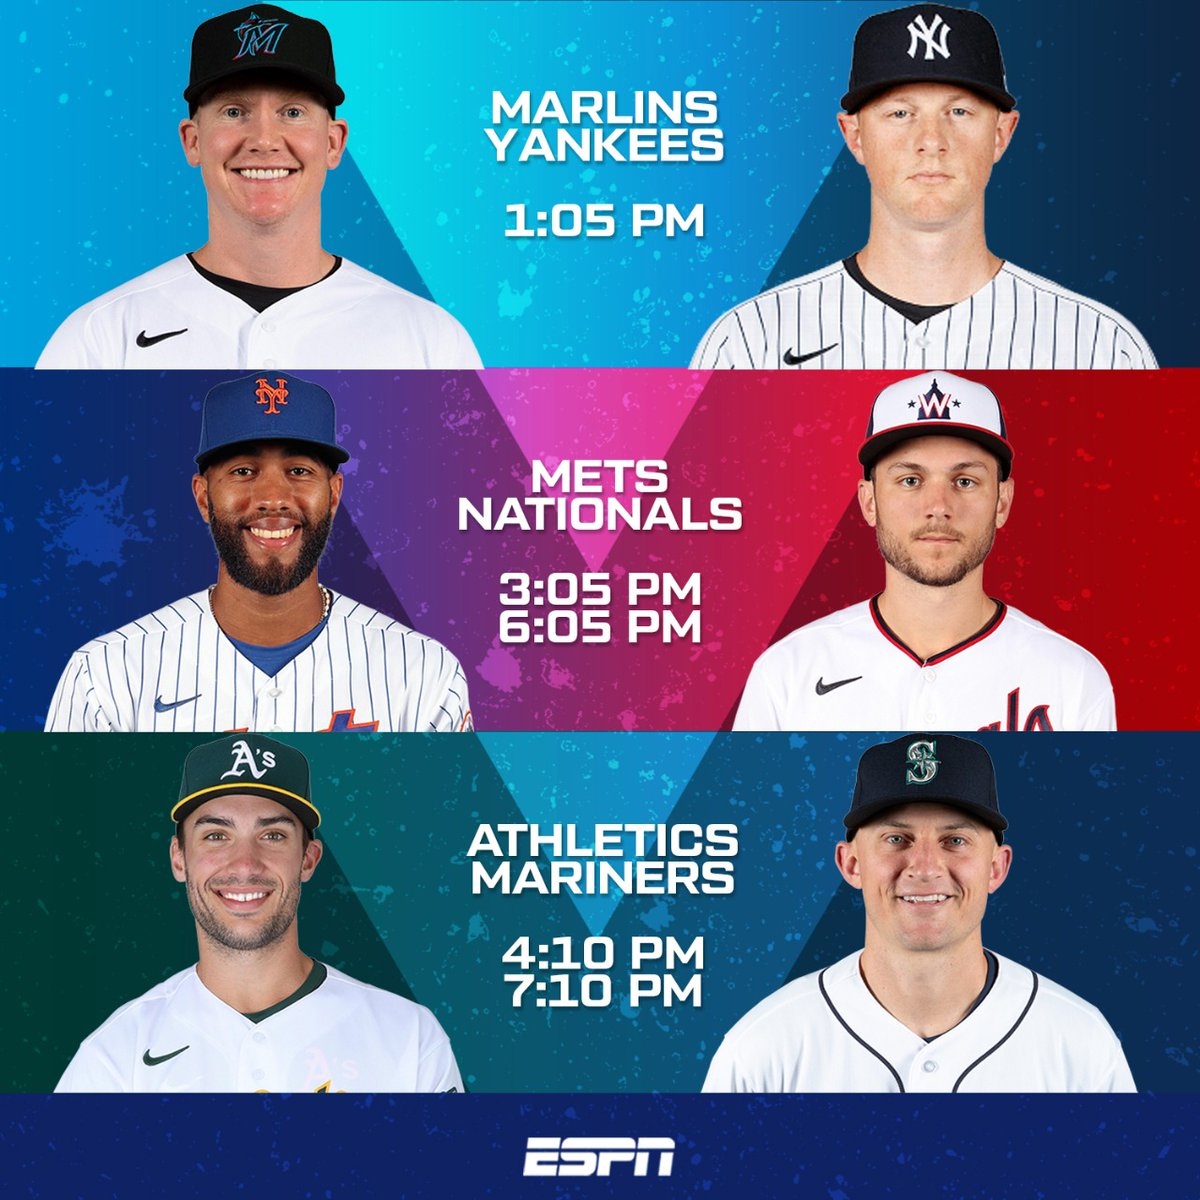 Menú del día 🍽⚾️ ⠀ #MLBxESPN #LiderMundial https://t.co/luCGJ3To0g